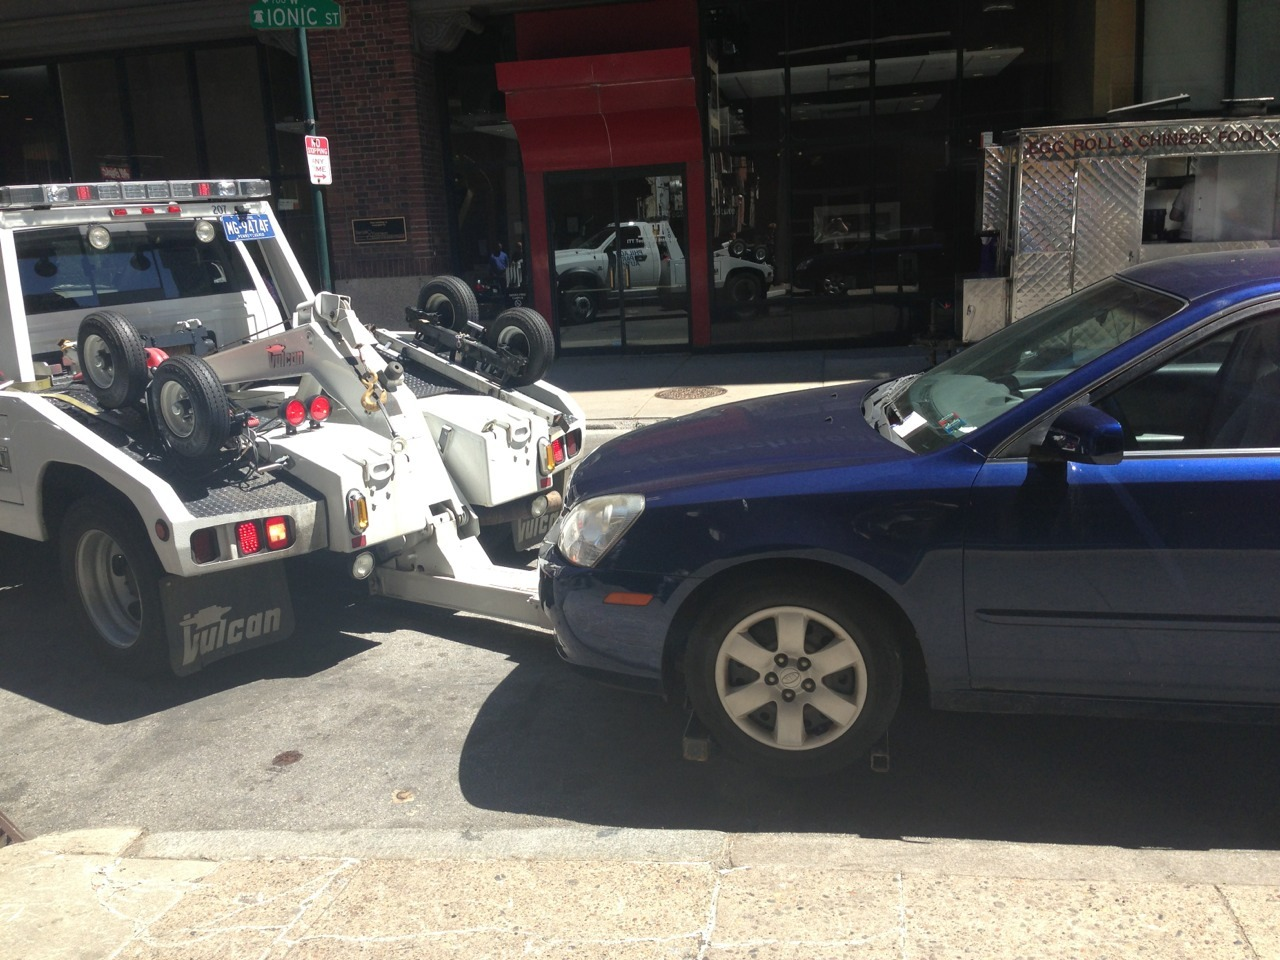 if u were parked on 7th near sansom, here's who stole yer car.